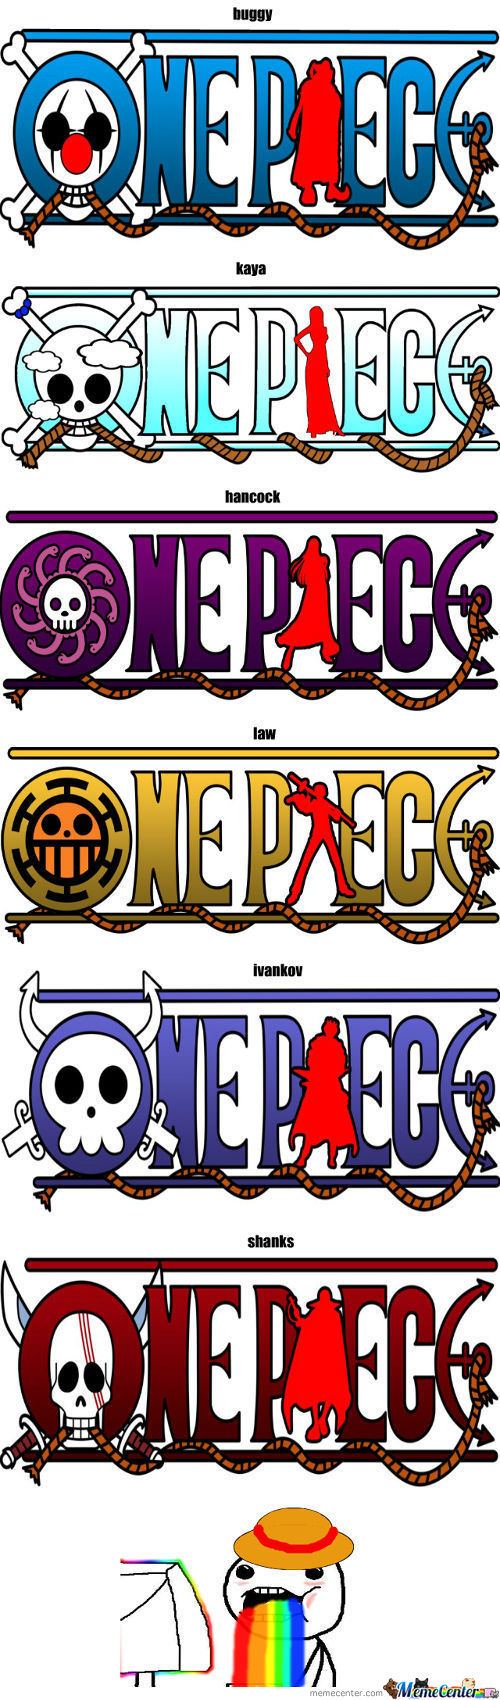 I Heard You Like One Piece